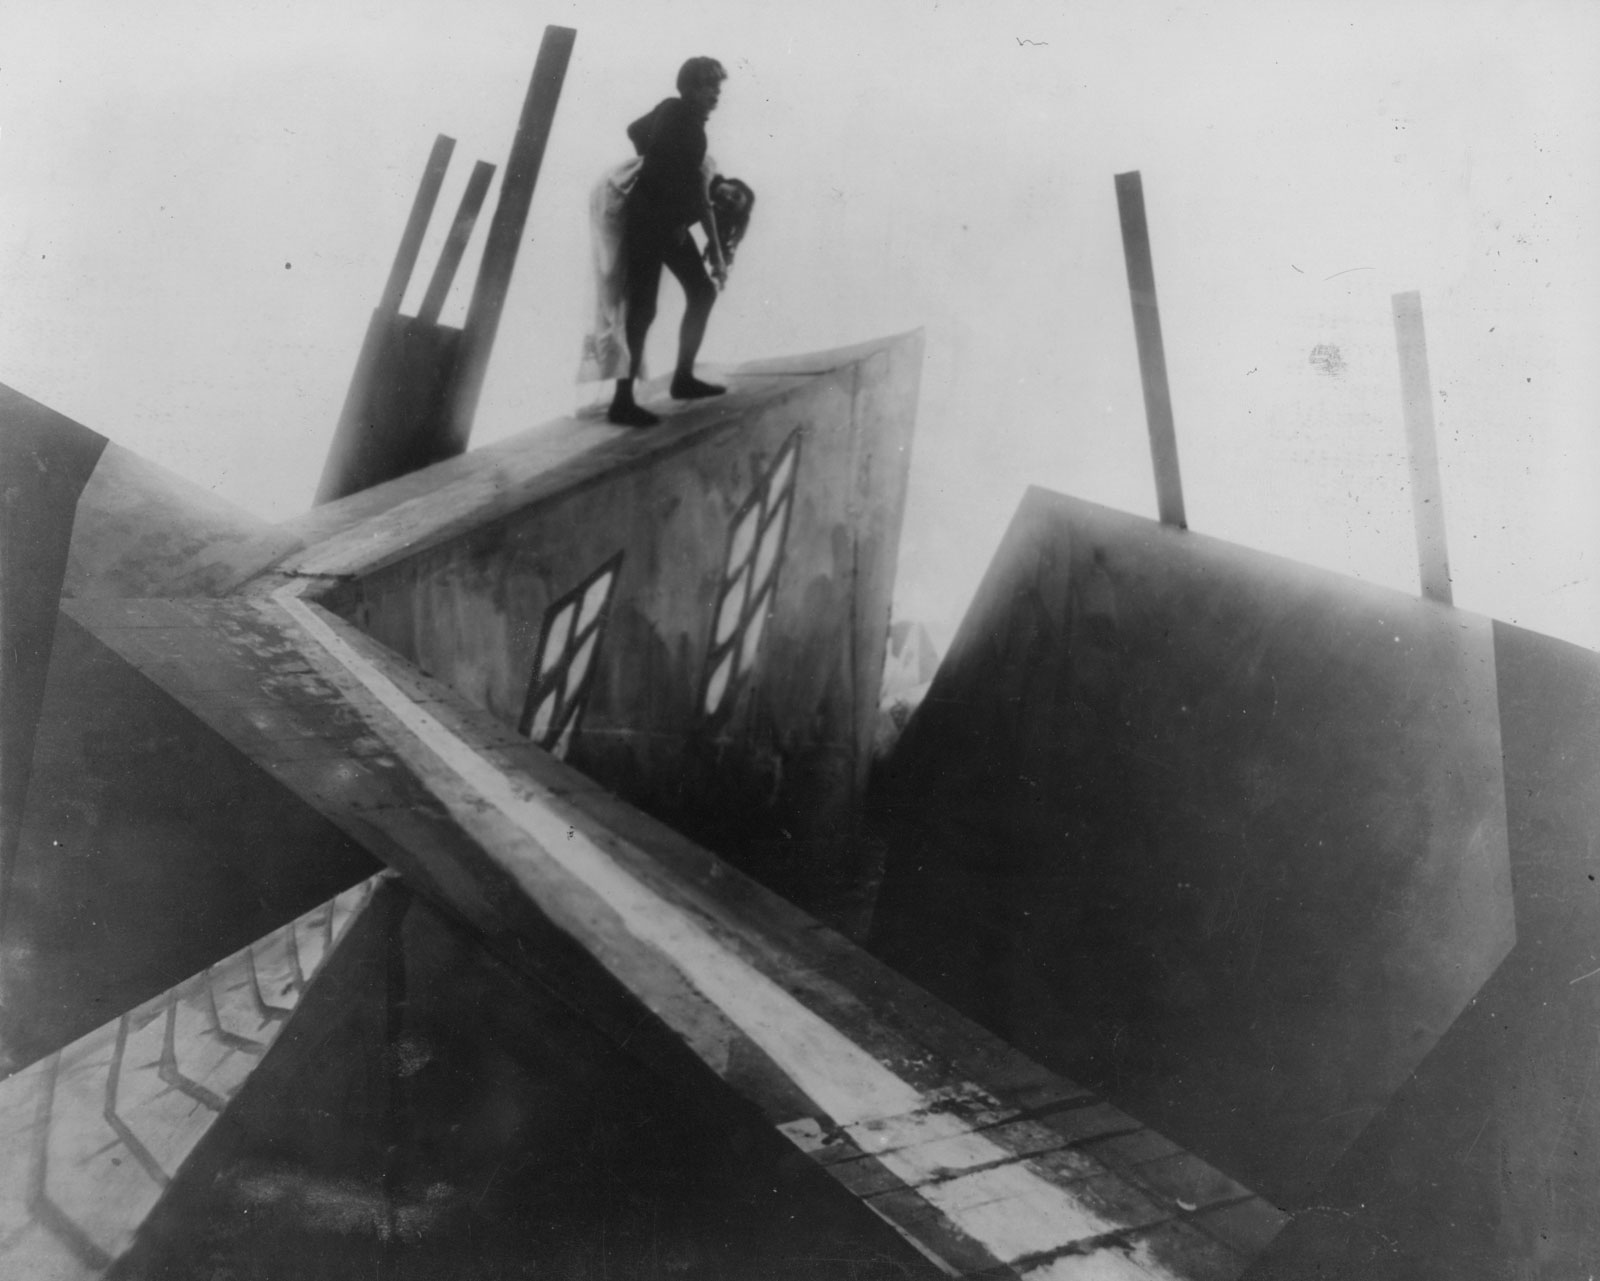 Cesare (Conrad Veidt) abducts Lil Dagover in The Cabinet of Dr Caligari (1919)